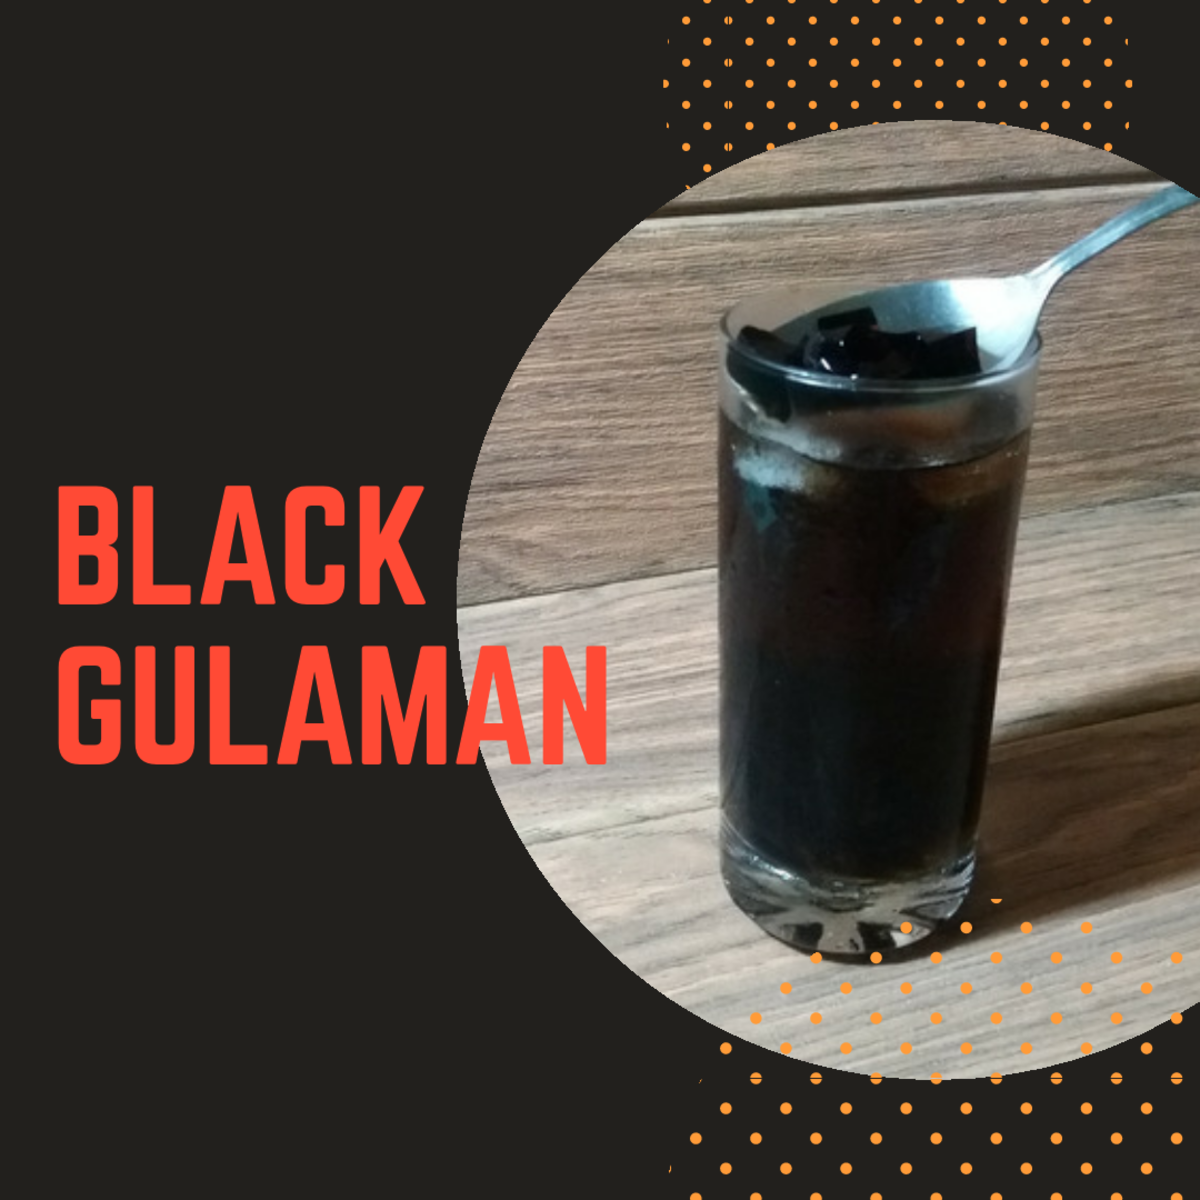 Learn how to make black gulaman